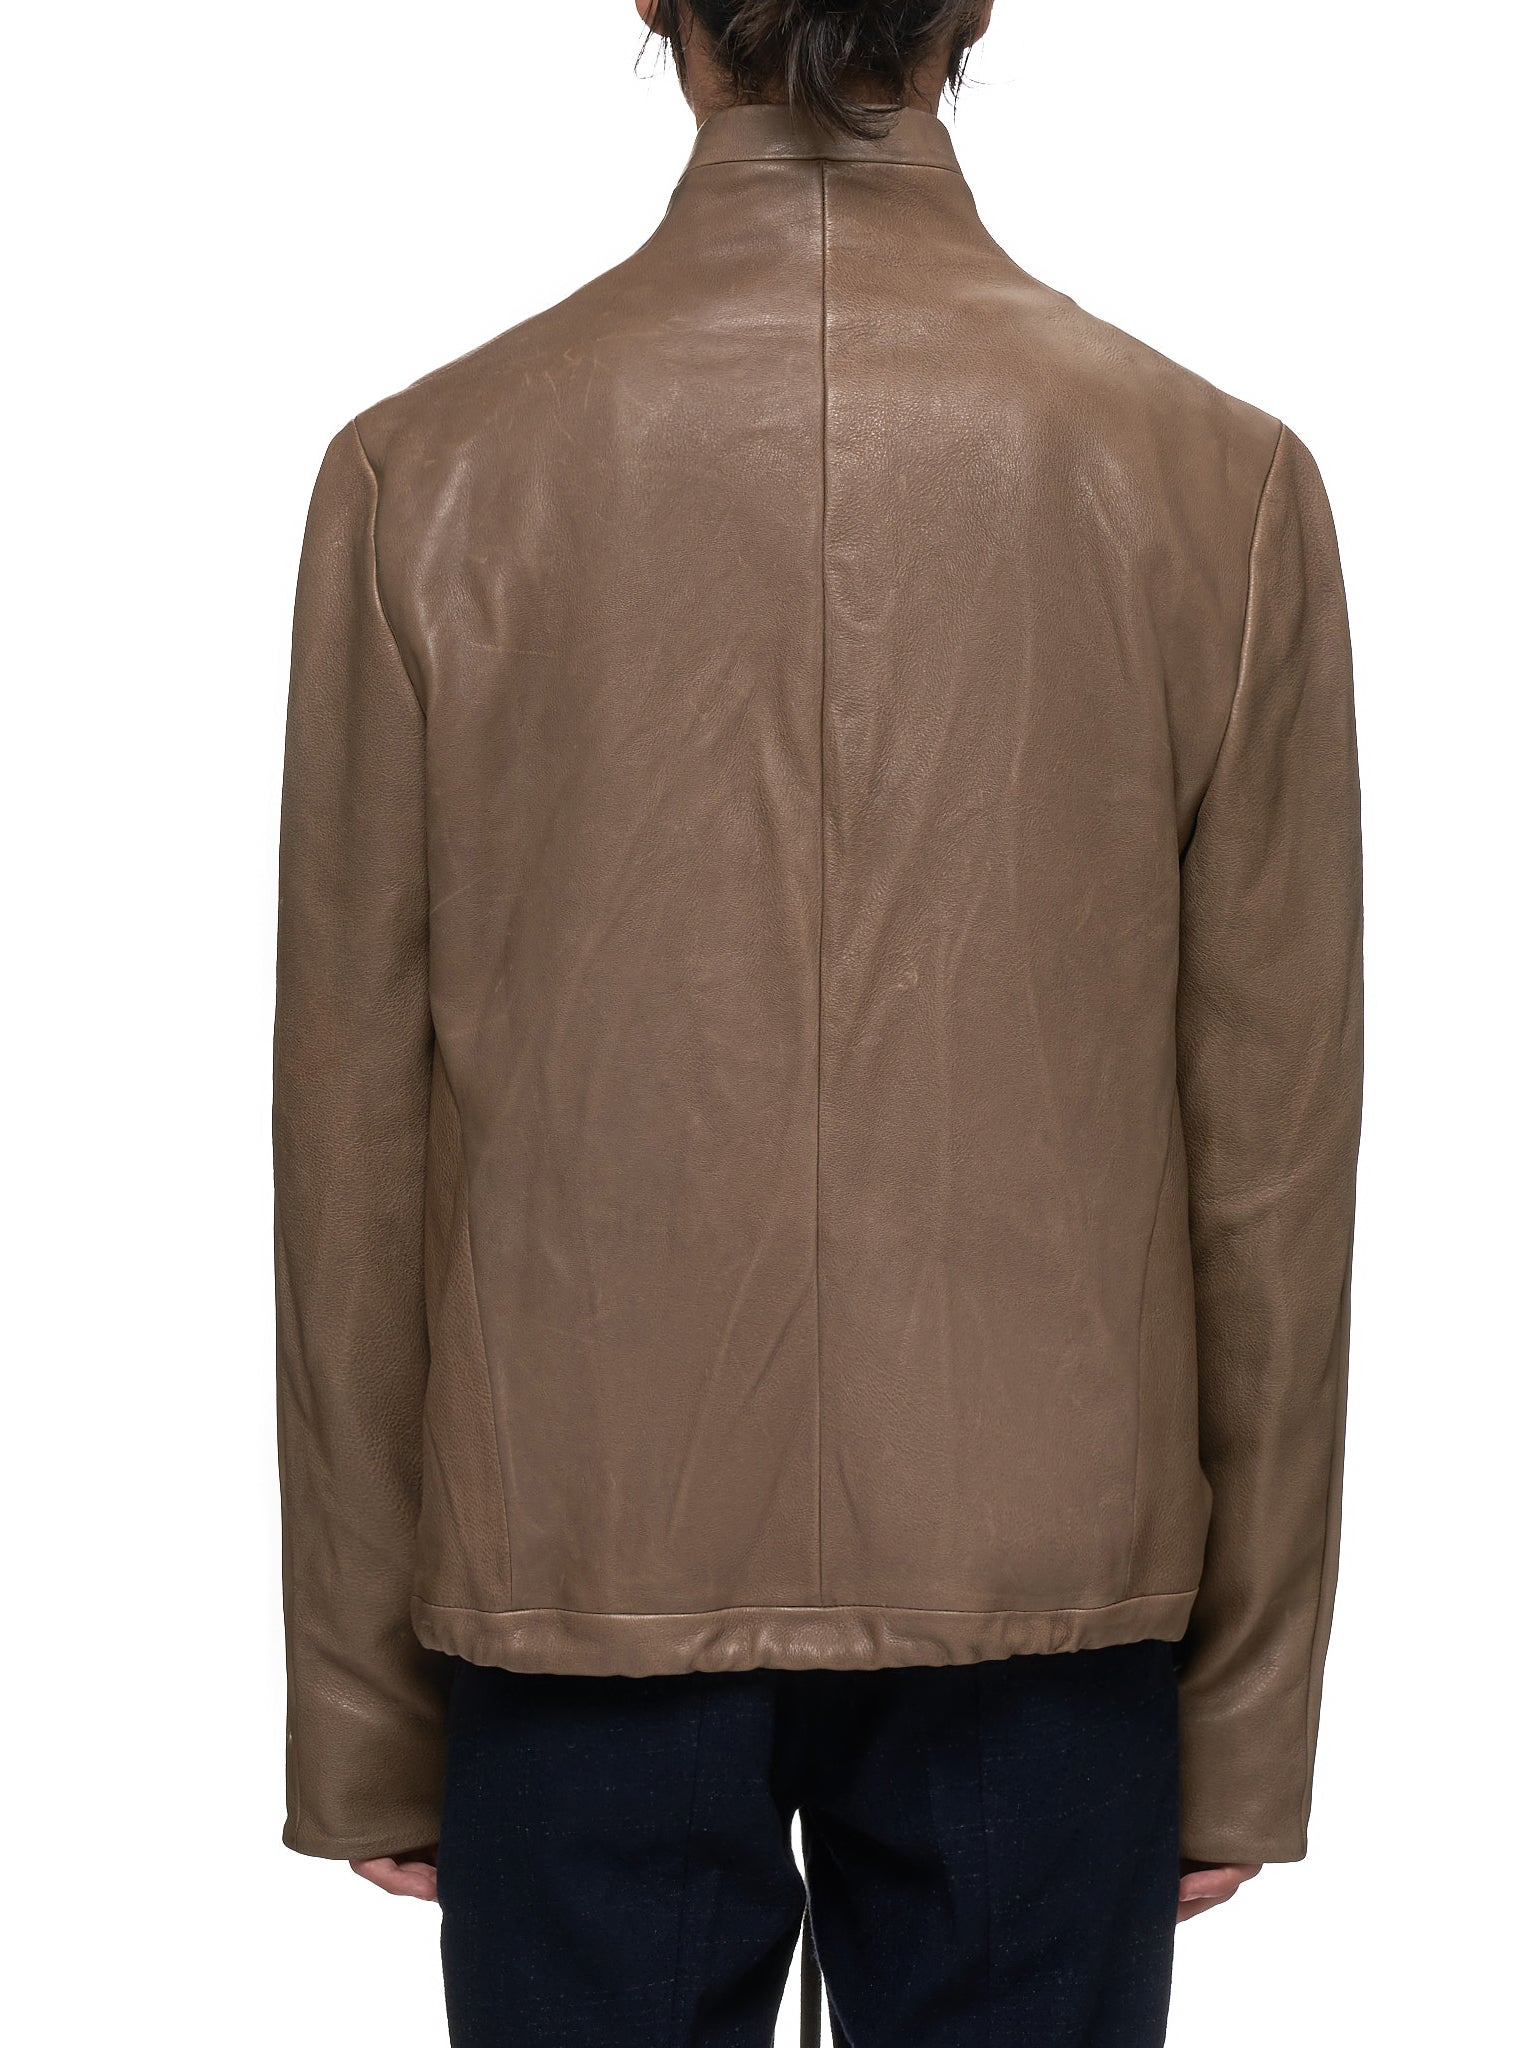 MA+ Leather Jacket - Hlorenzo Back